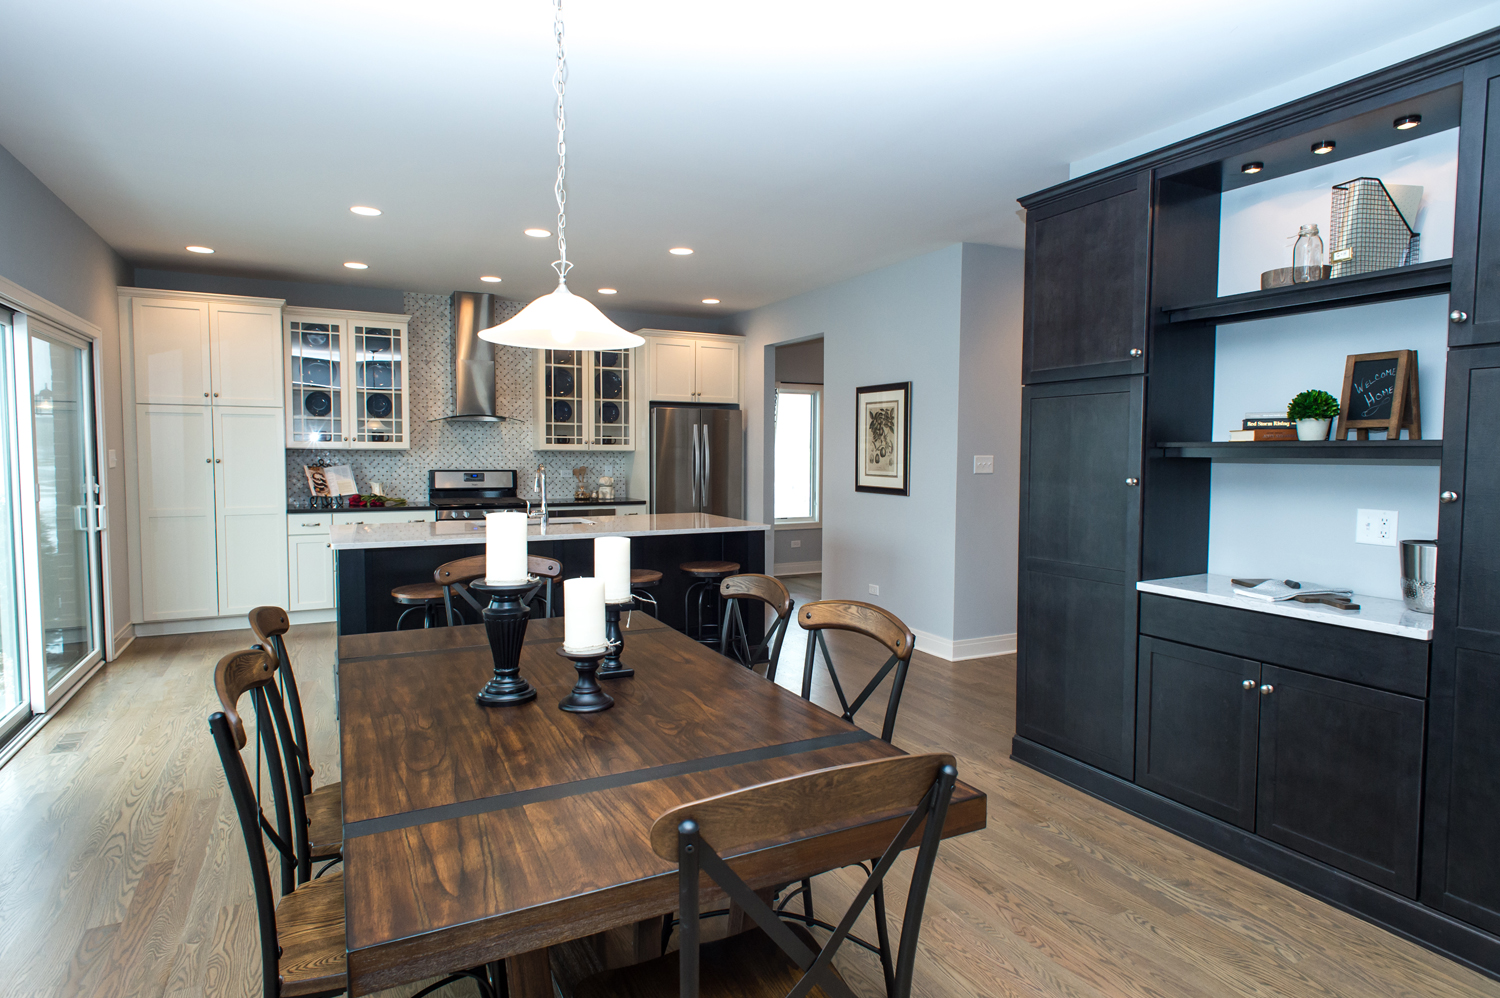 Accomplished Schools and Quality Construction Drive Homebuyers to Farmingdale Village